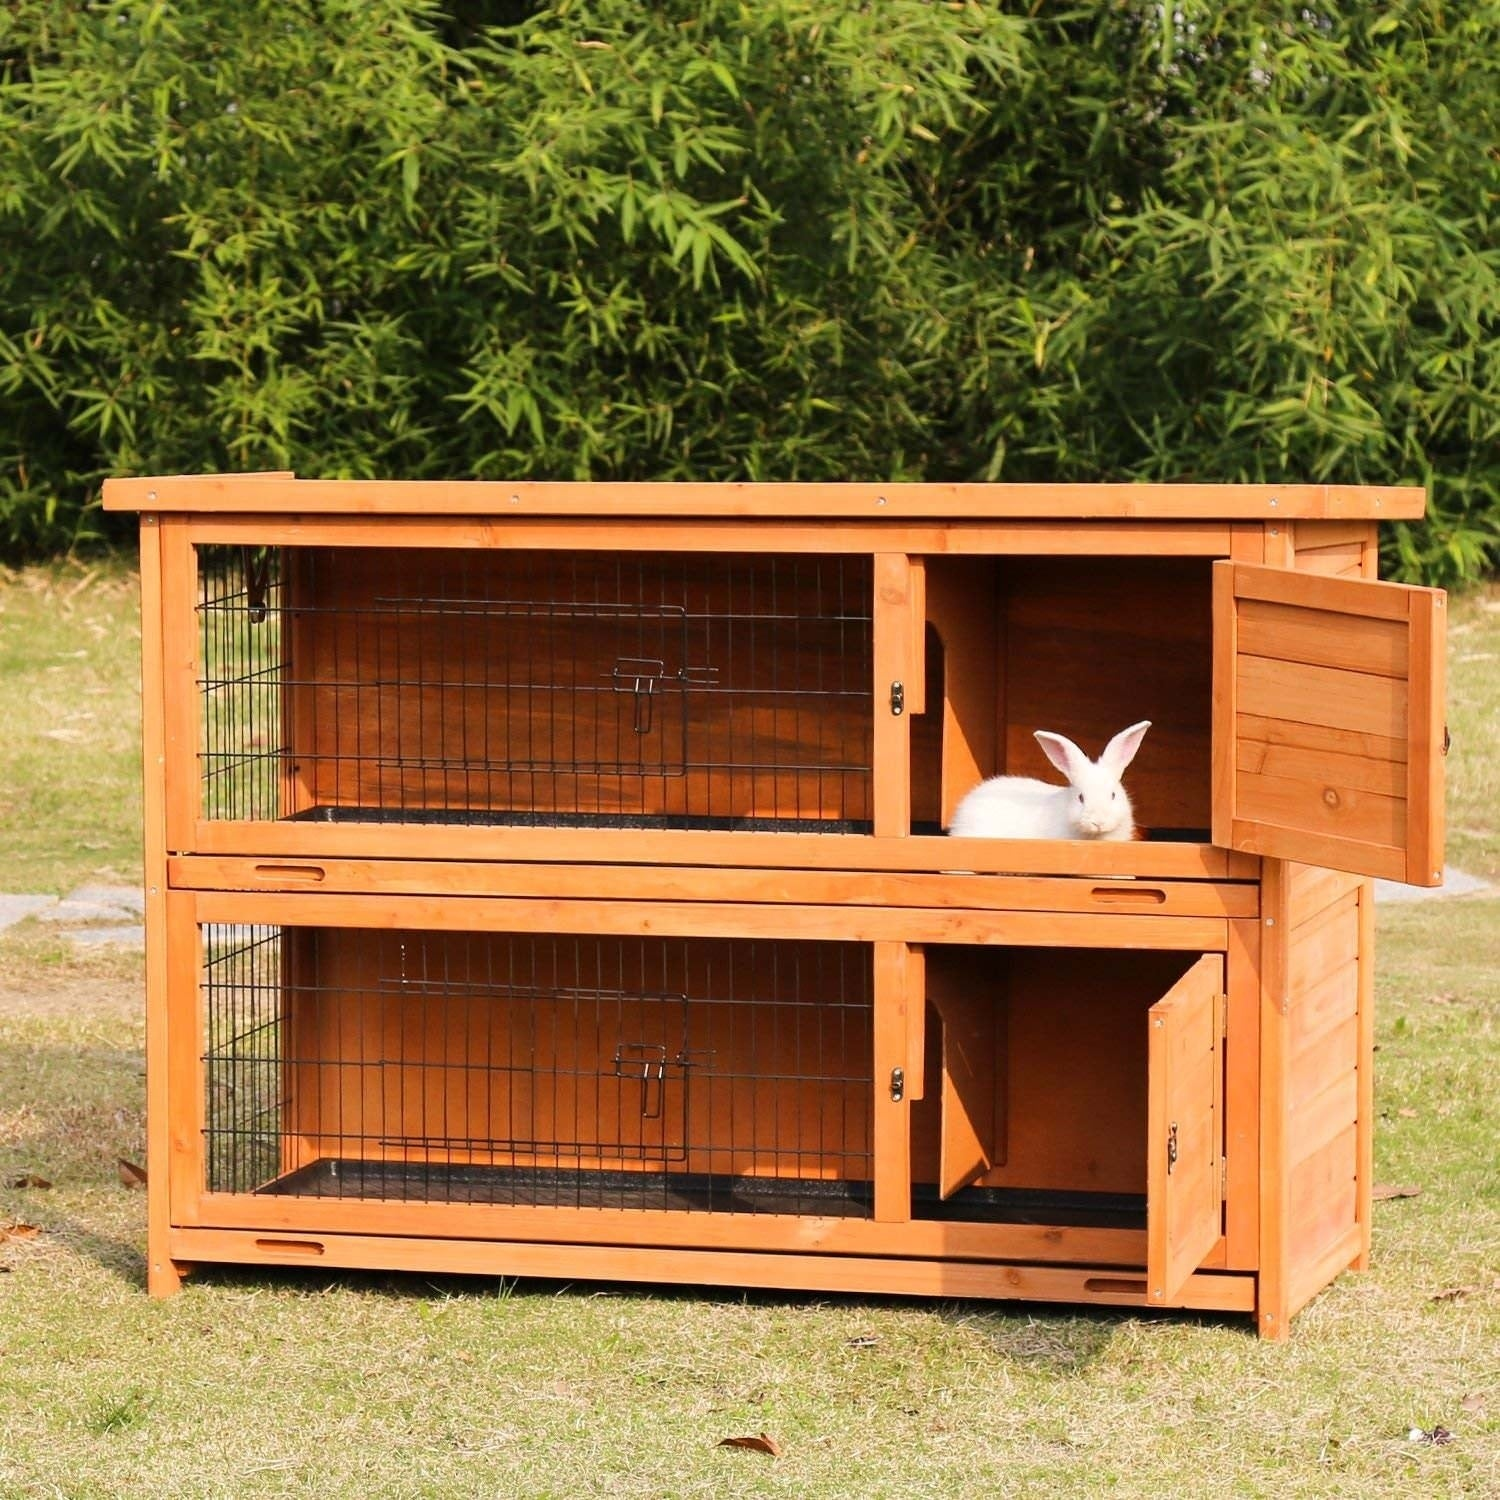 Kinbor Wooden Rabbit Hutch Bunny Cage Small Animal House Pet Wood